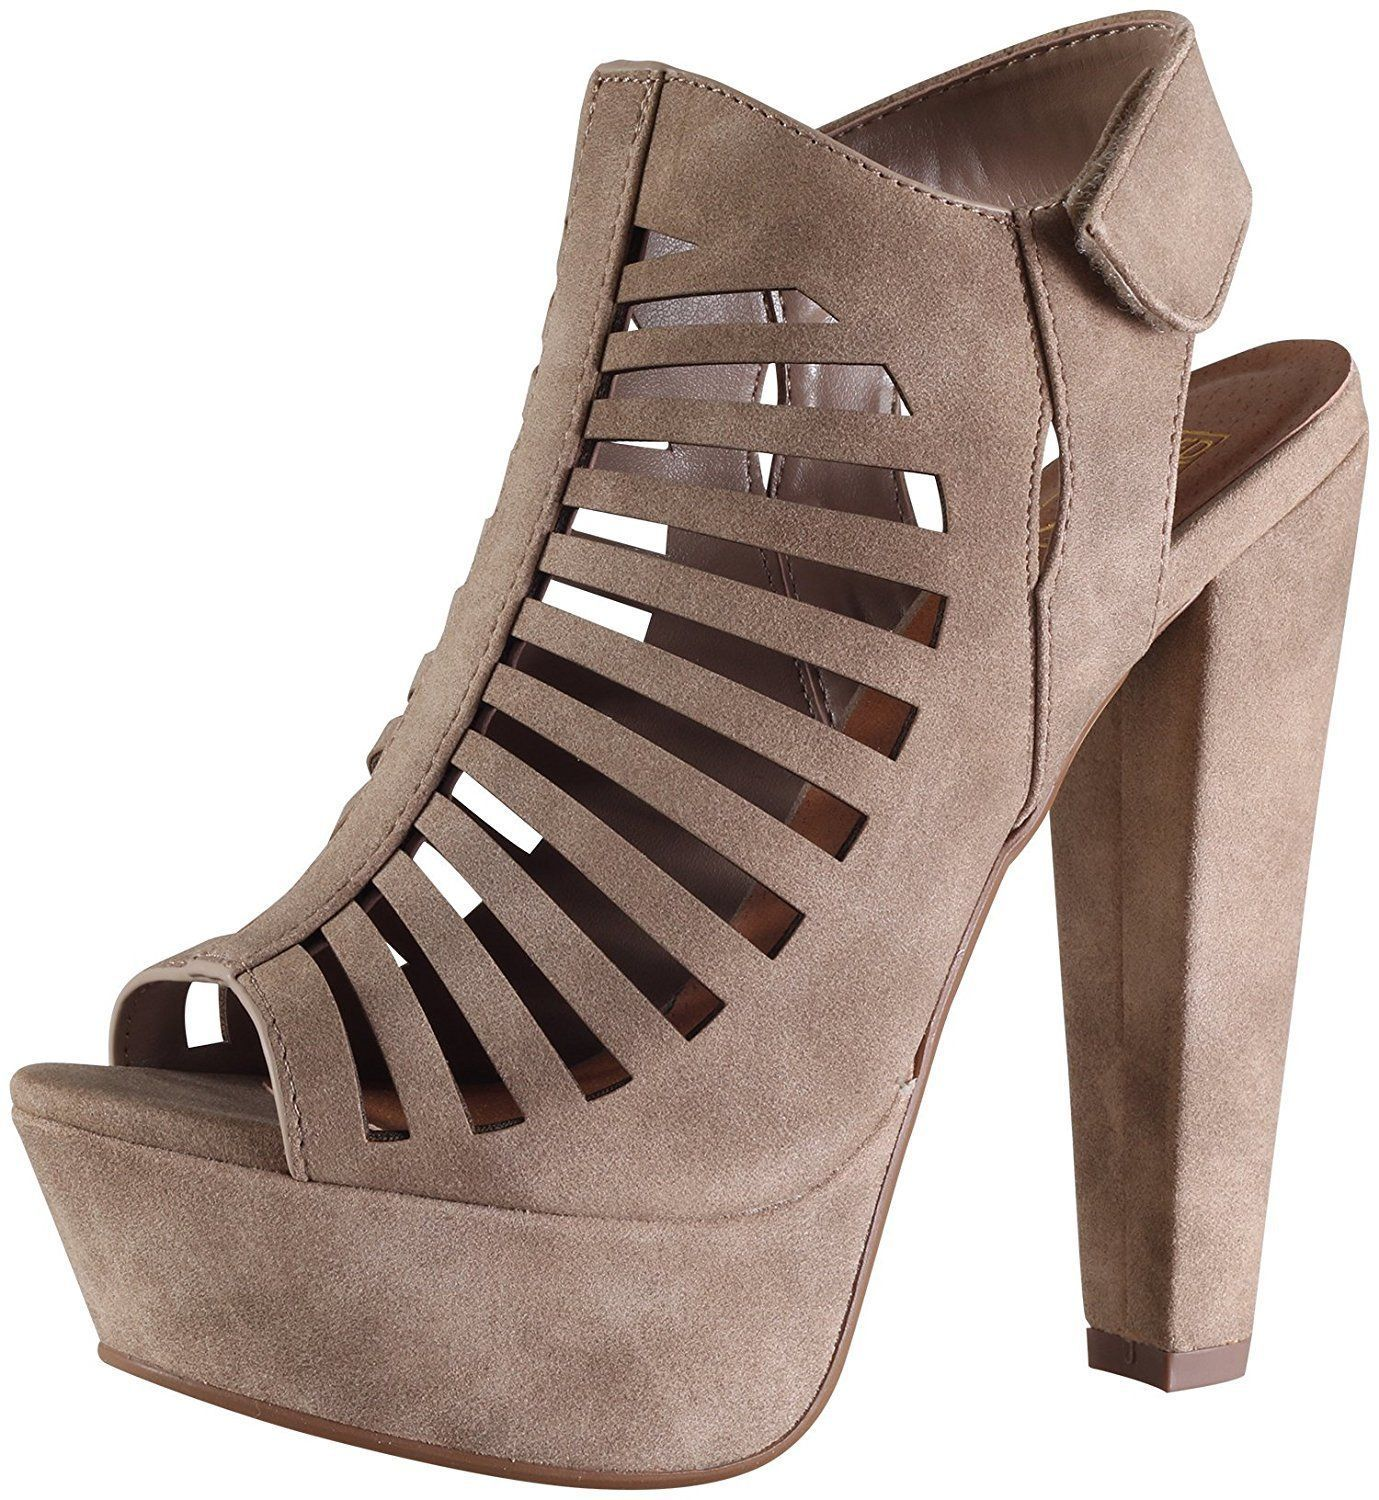 MANJI! Speed Limit 98 Women's Peep Toe Slingback CutOut Platform Chunky Heel Sandals